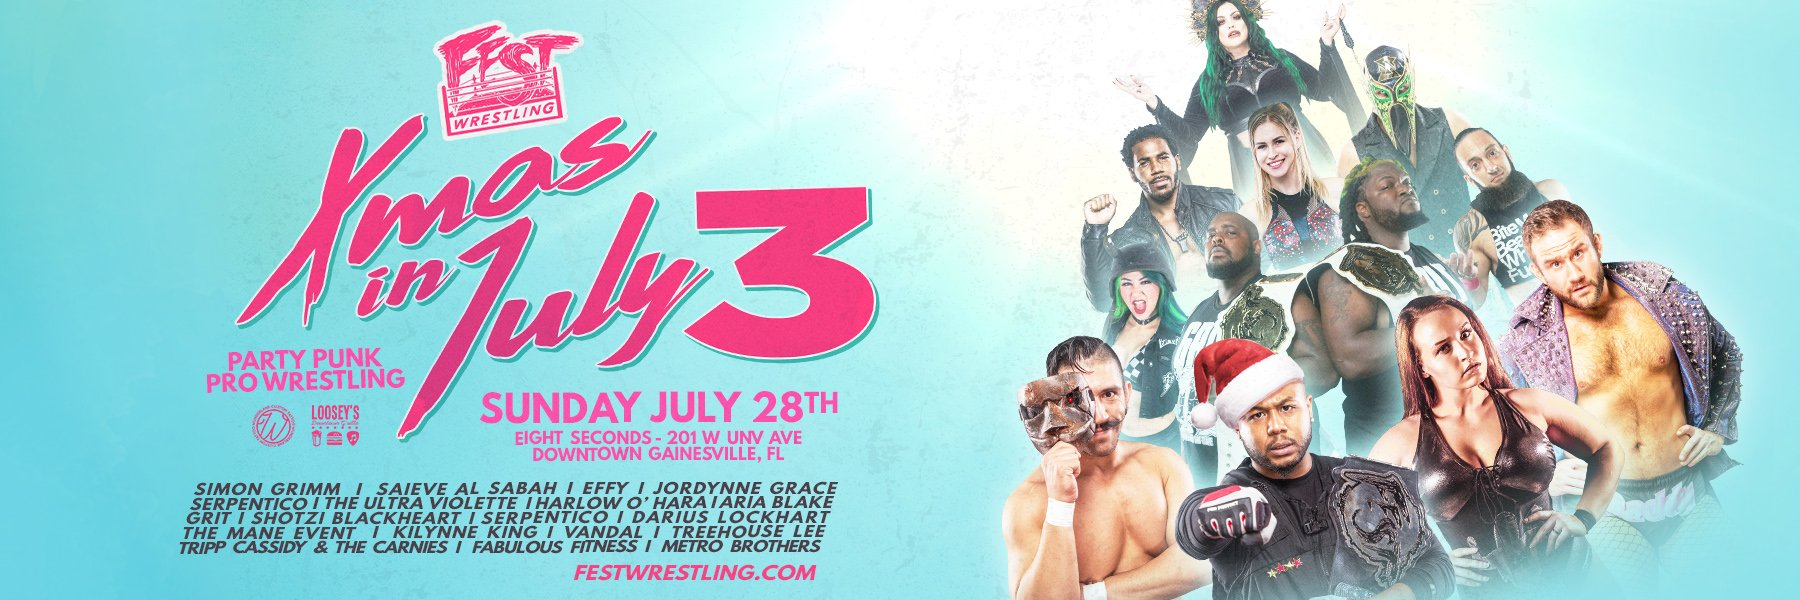 FEST Wrestling Xmas in July 2019 Streaming Now!